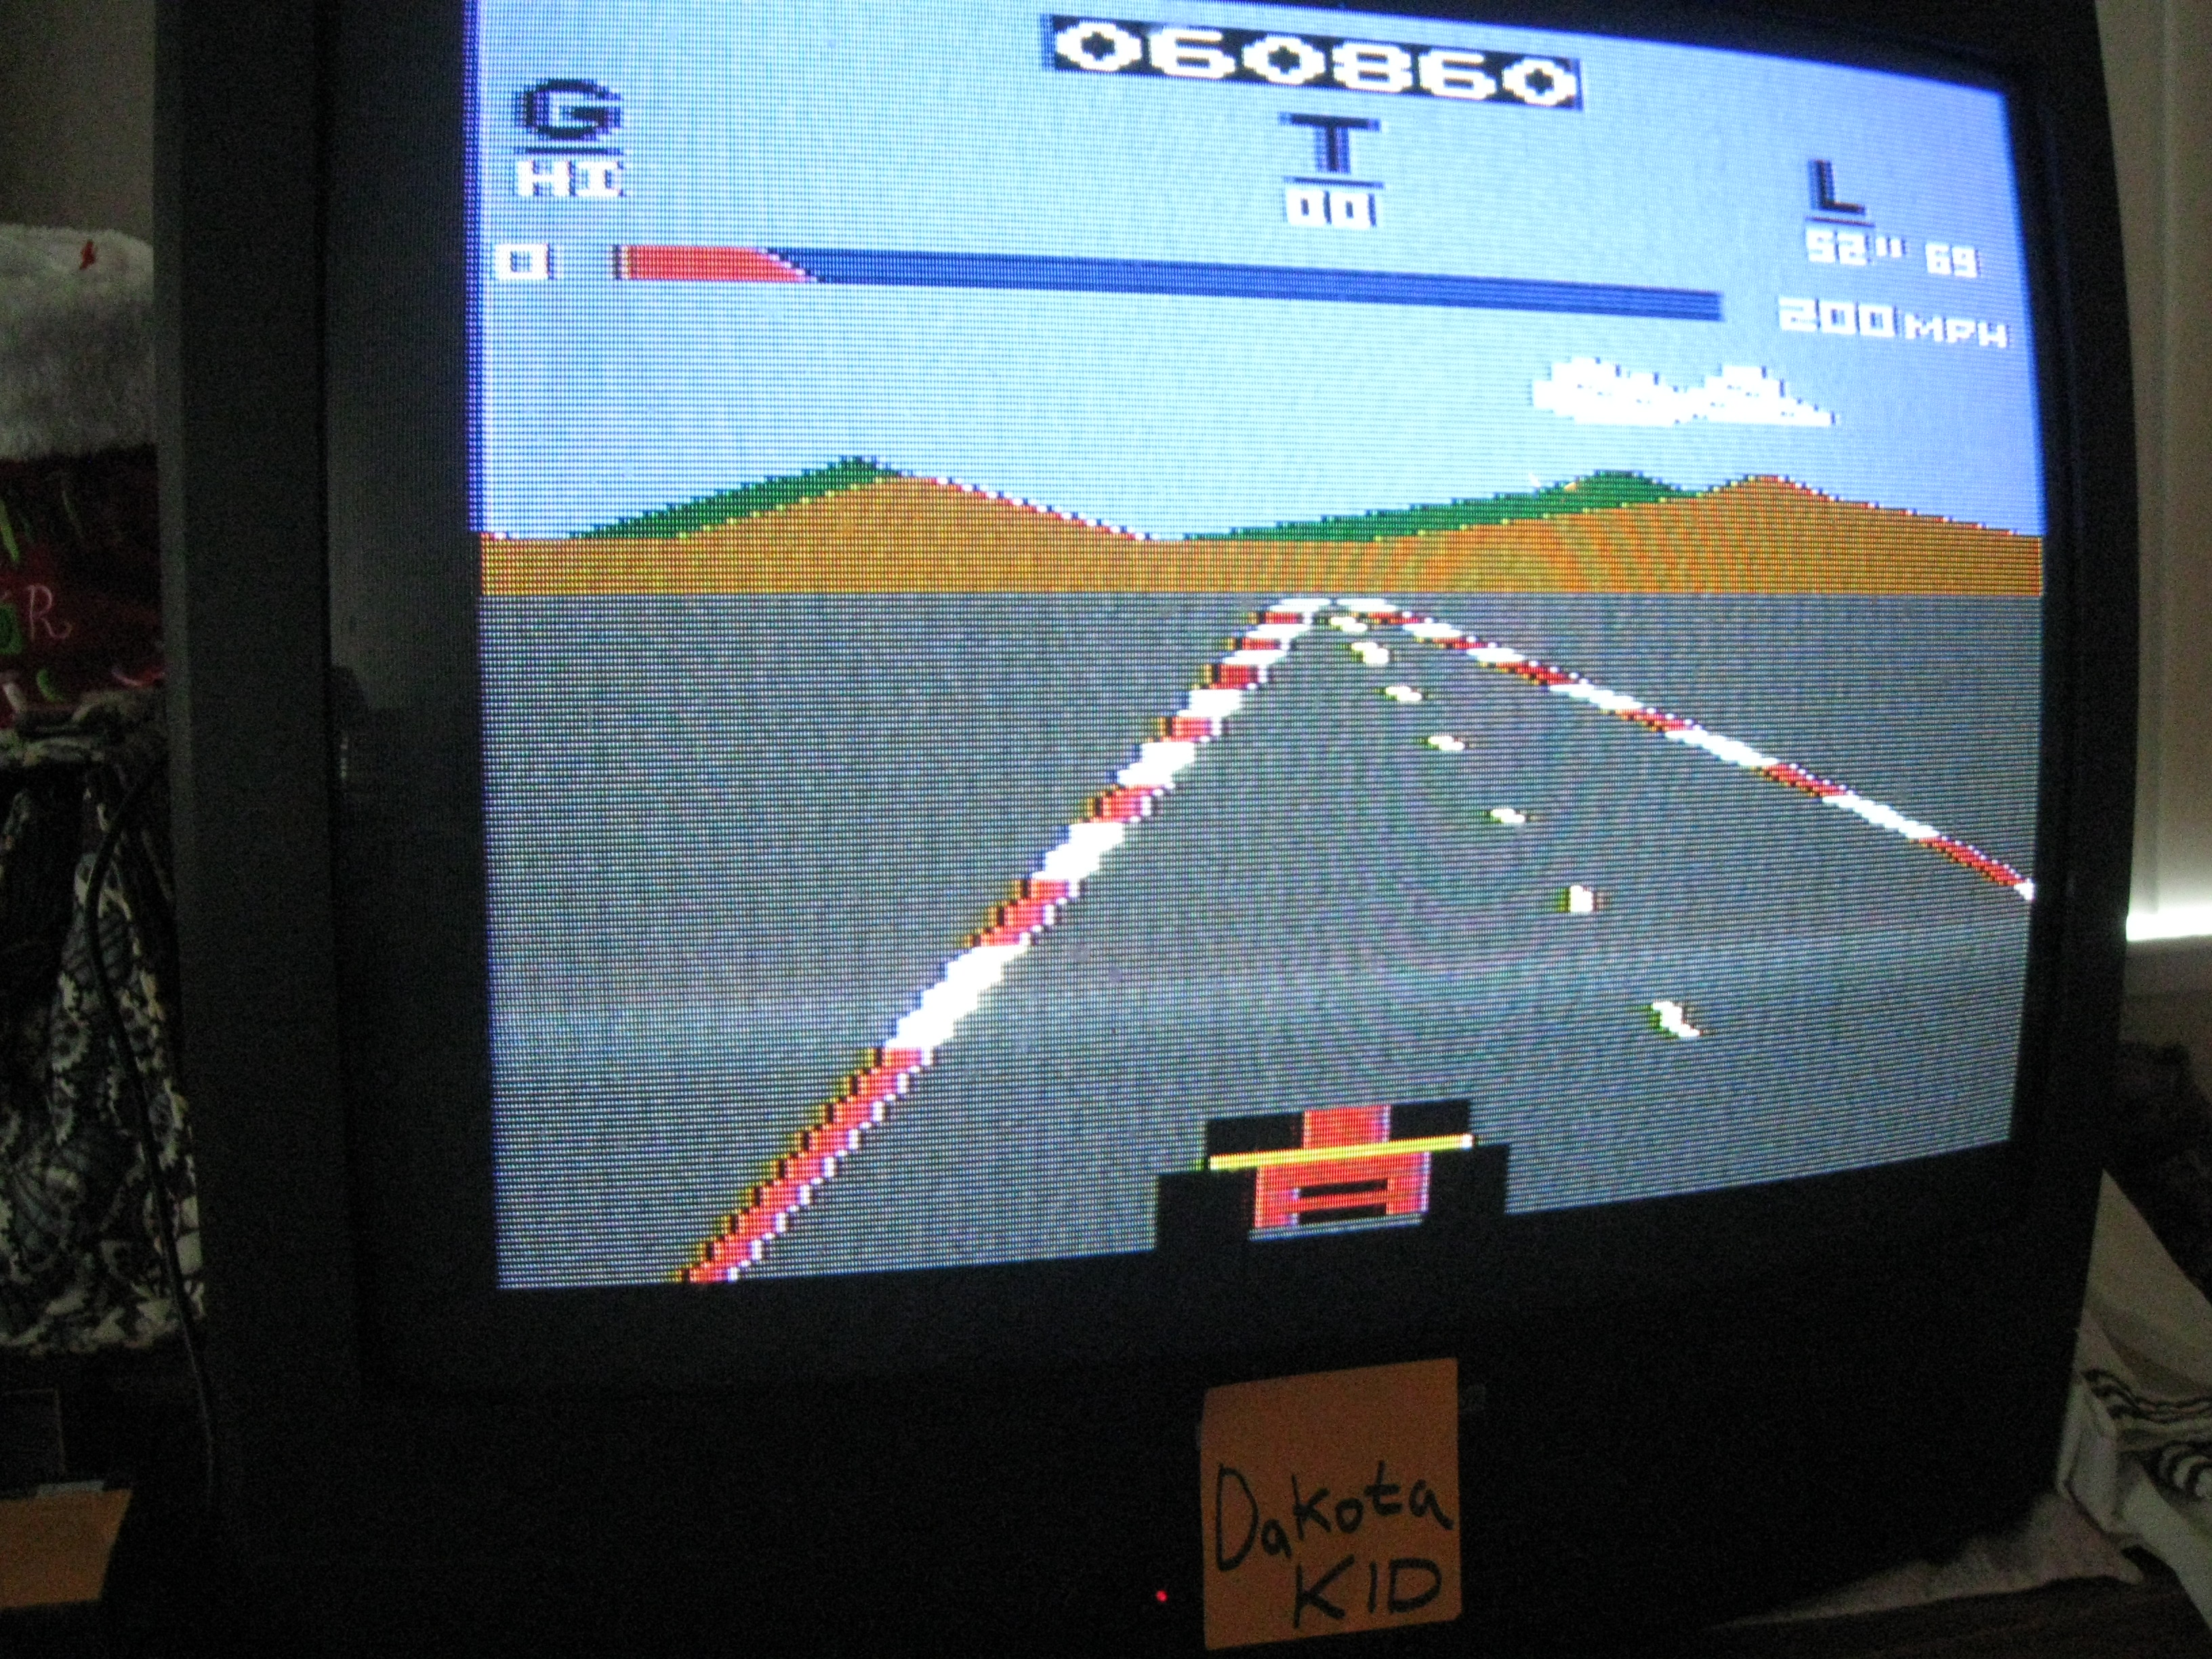 DakotaKid: Pole Position (Atari 2600) 60,860 points on 2016-02-03 16:02:41